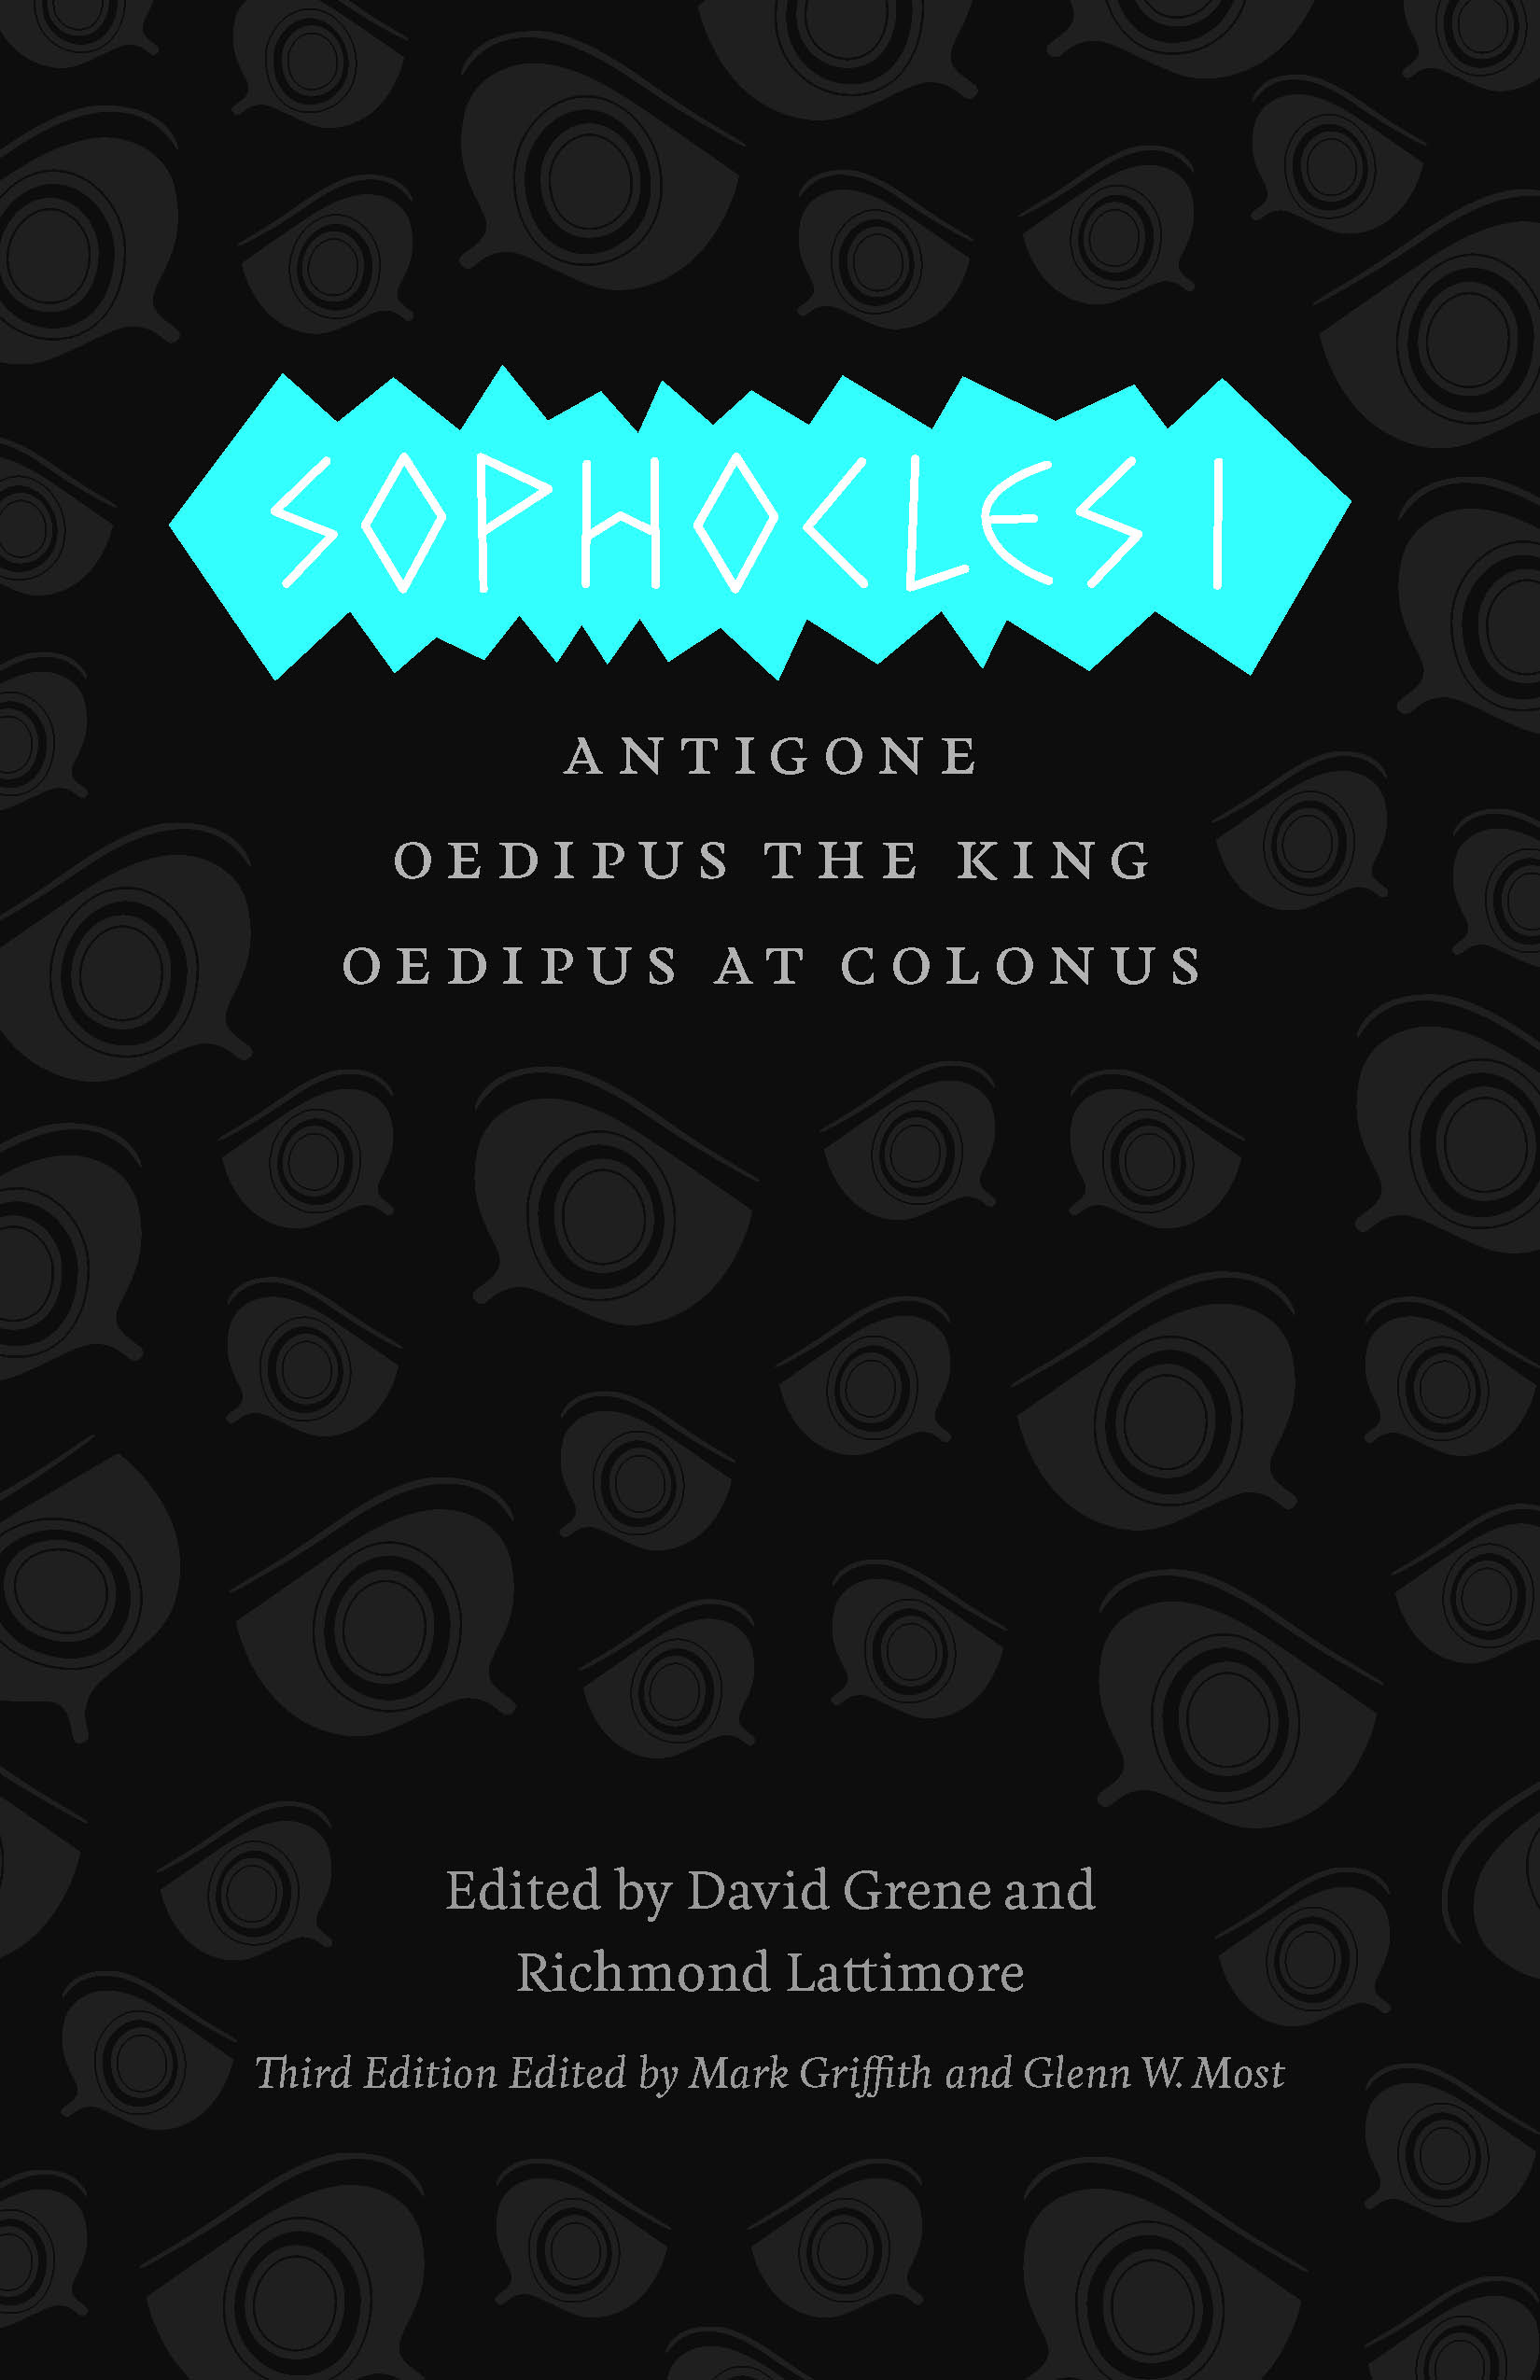 literary devices used in oedipus rex